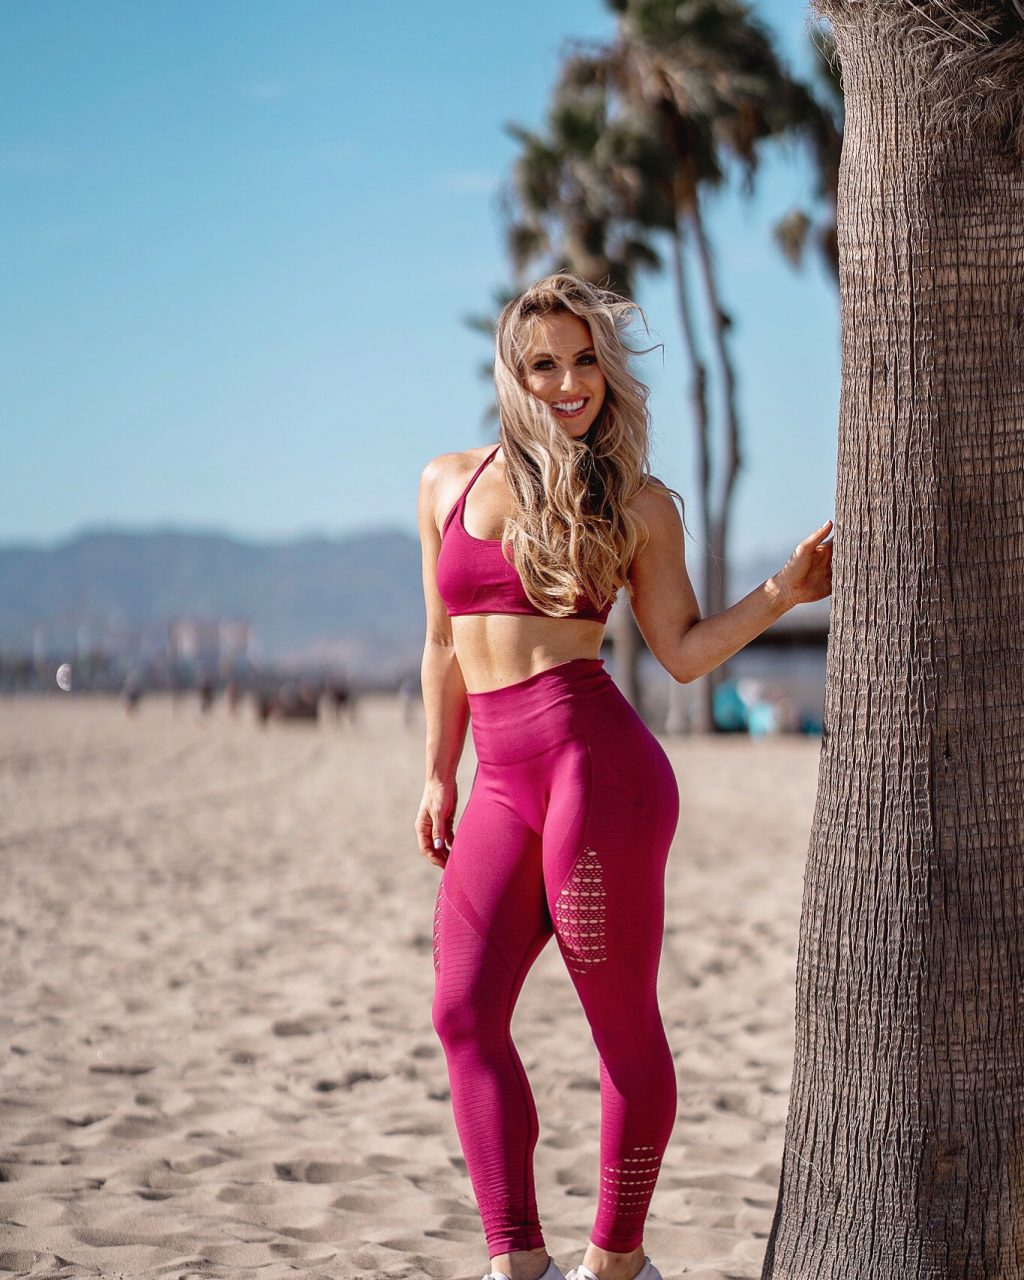 Personal Trainer Los-angeles, California - Sami Balchum